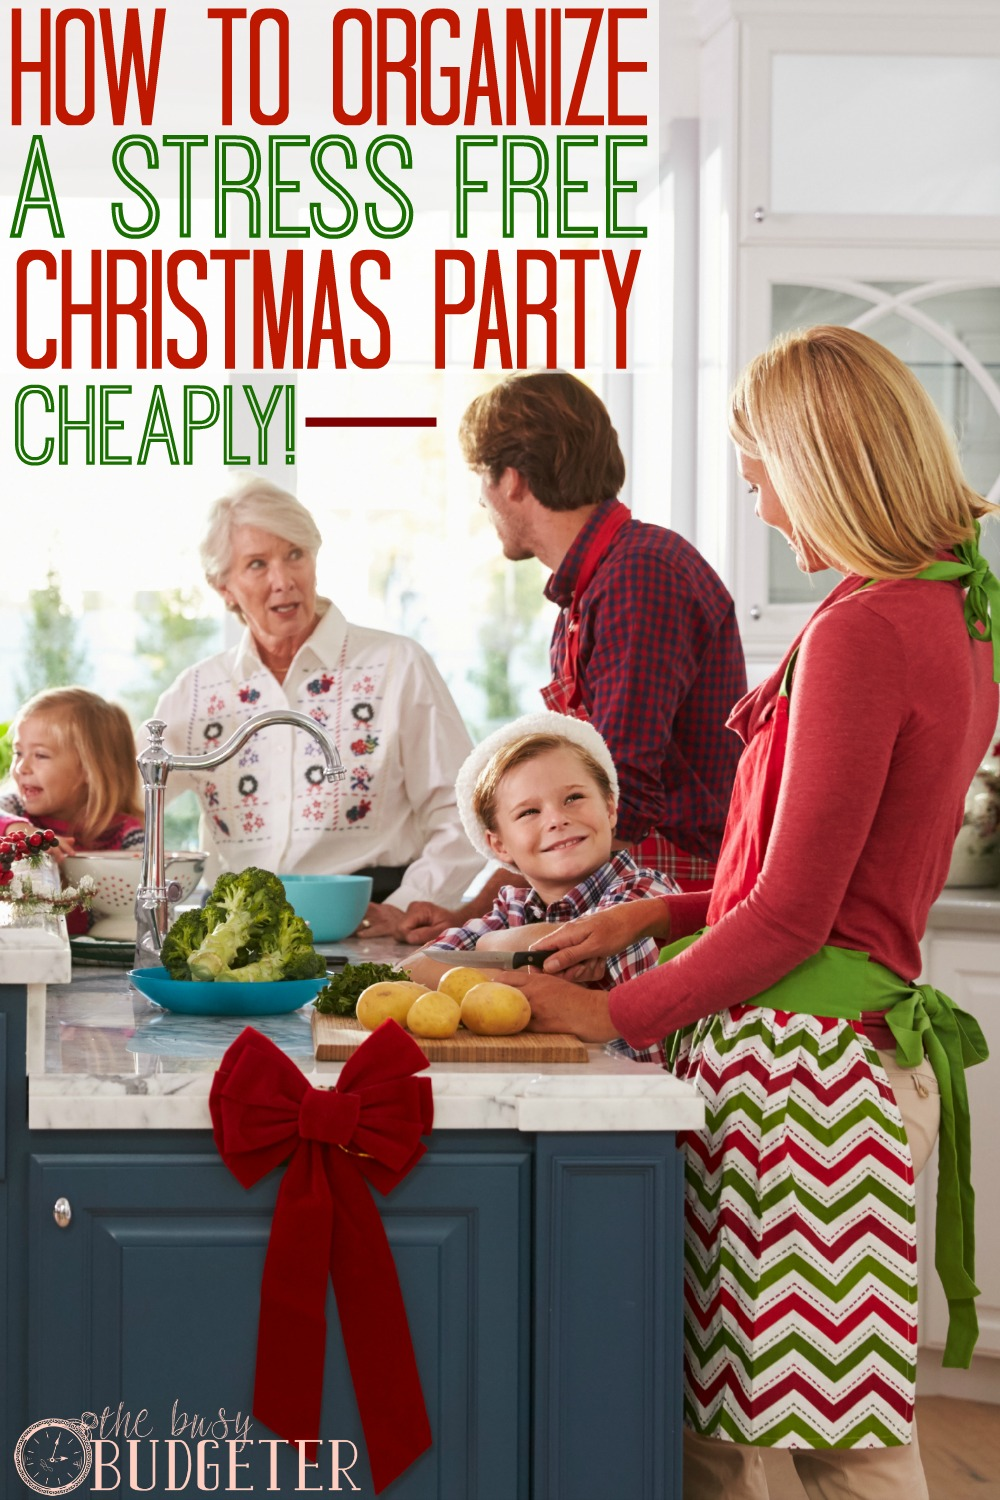 How to organize a stress free Christmas party! I throw a ton of parties. She's completely right. I started doing this about 3 years ago and it's made a world of difference! Parties went from being a ton of work to *almost* easy !